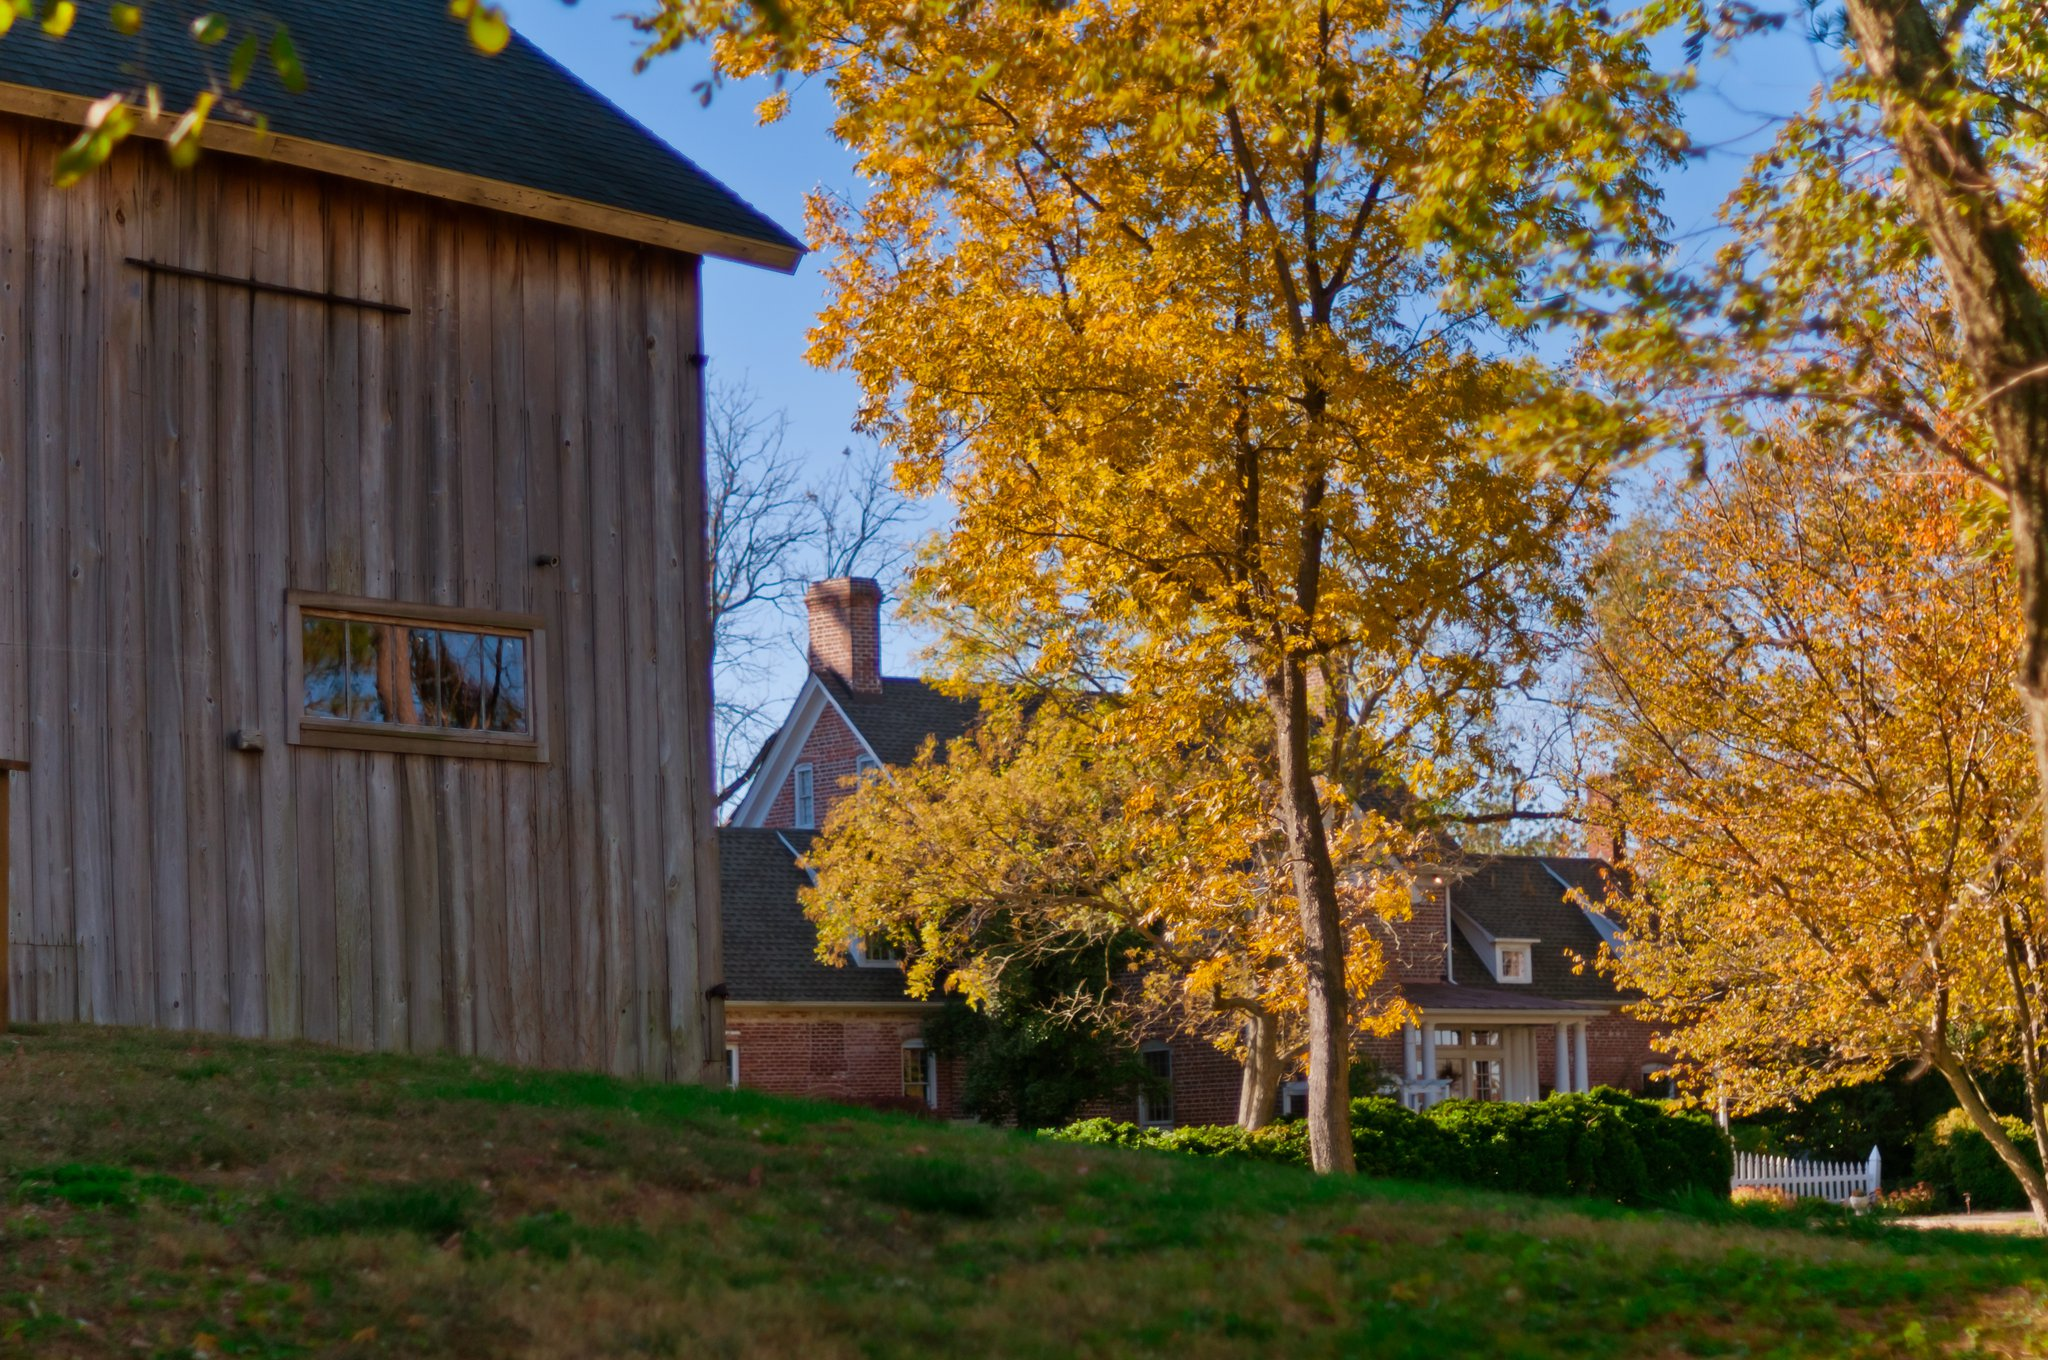 barn at combsberry inn md with trees and yellow fall leaves